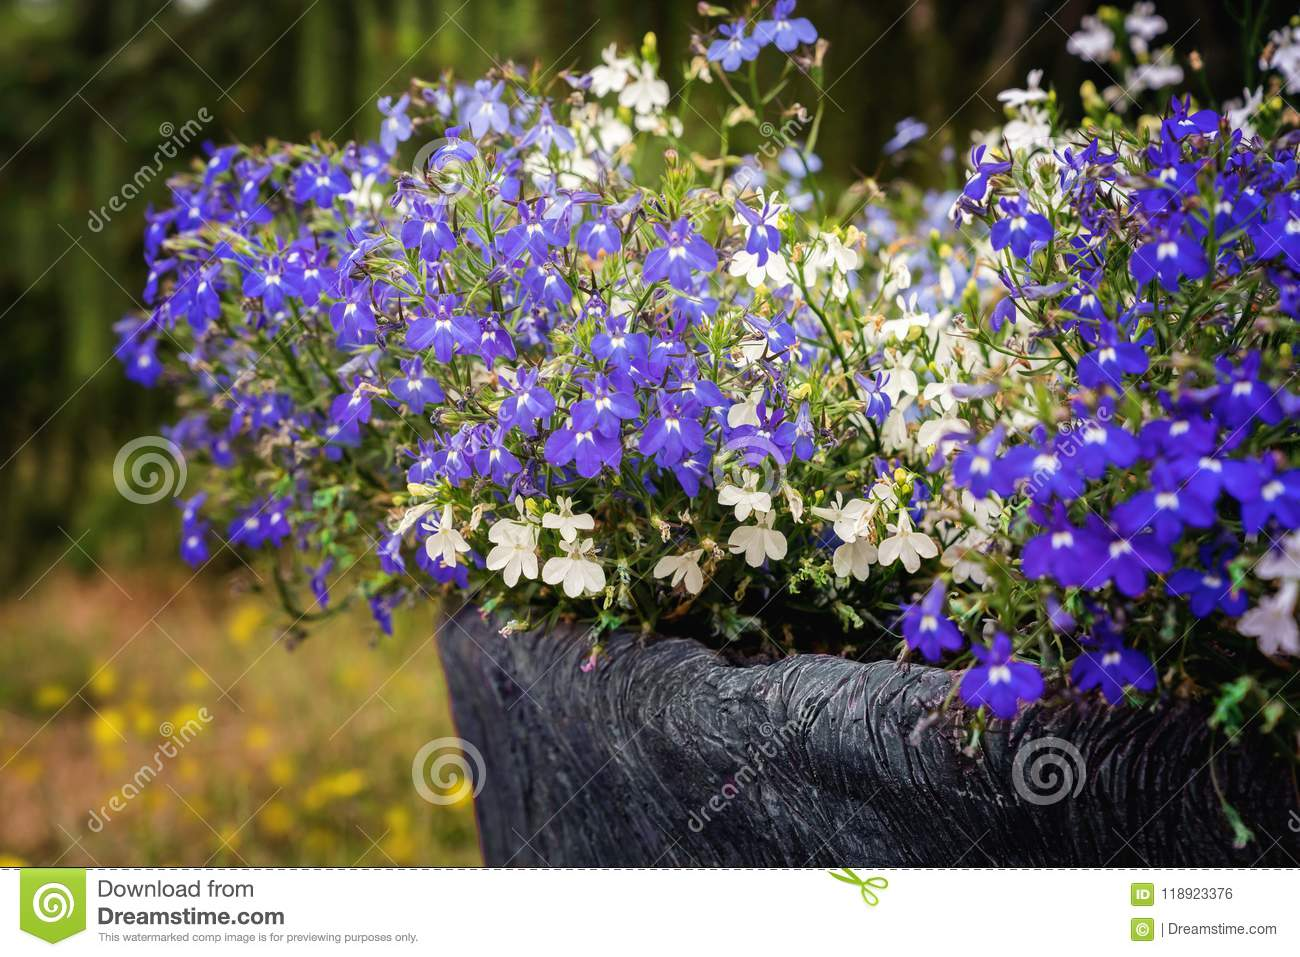 A Pot With White And Blue Lobelia Erinus Flowers Stock Photo Image